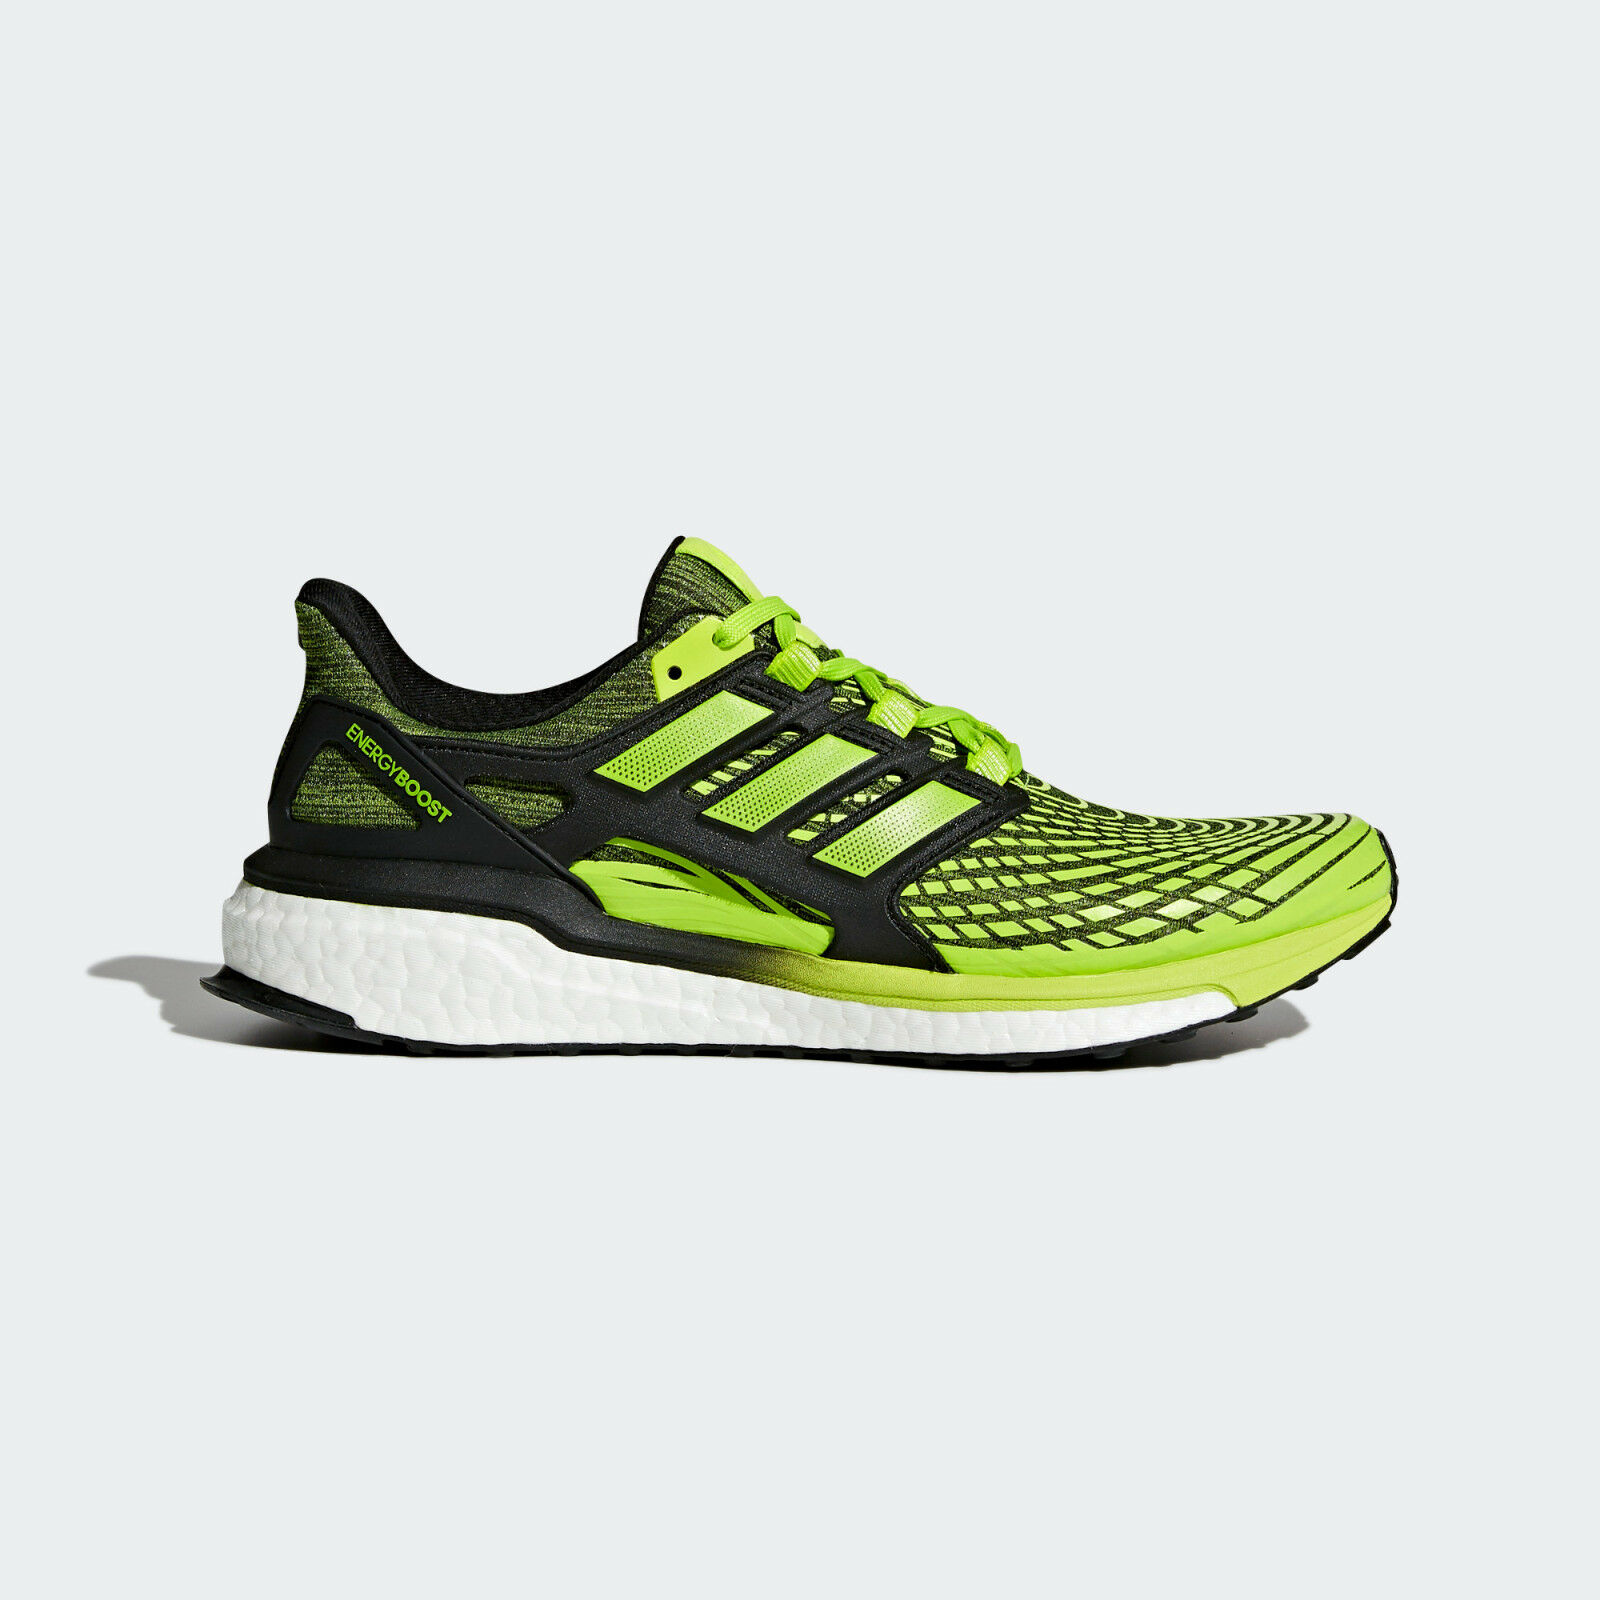 Mens Adidas Energy Boost Slime Green Sport Athletic Running shoes CP9542 10-12.5